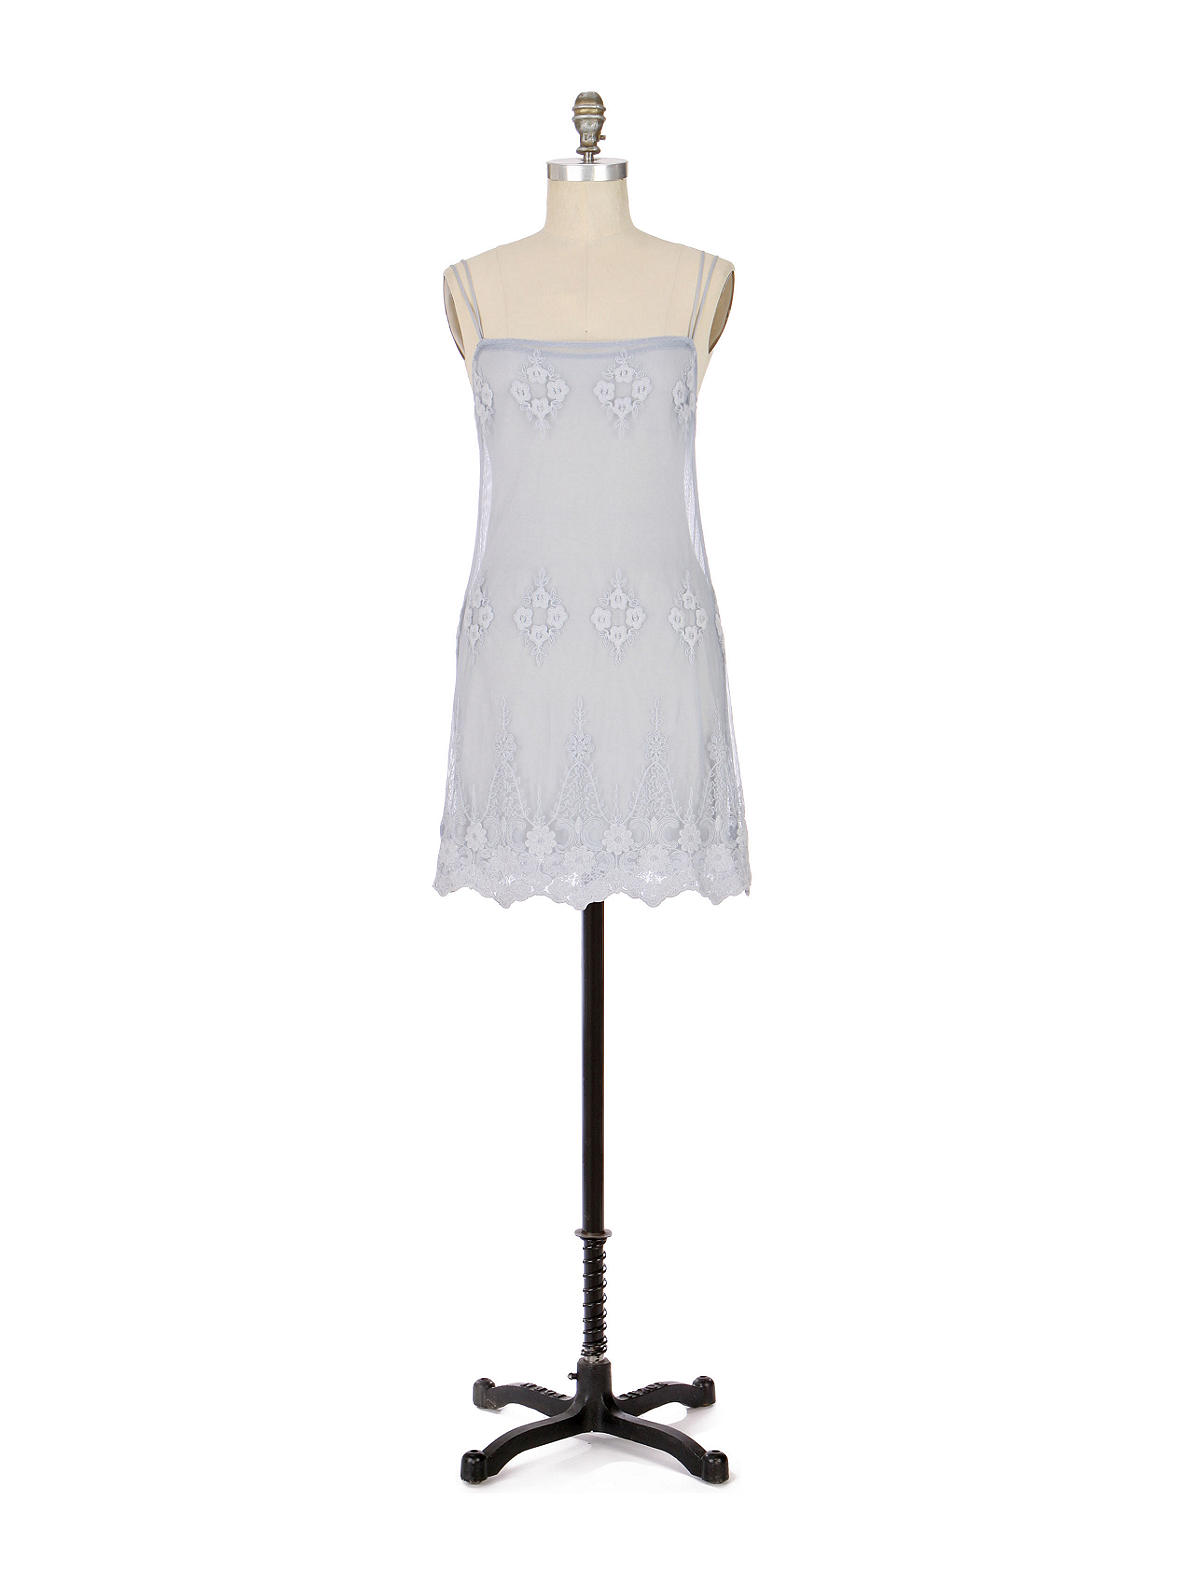 Valenciennes Lace Slip - Anthropologie.com